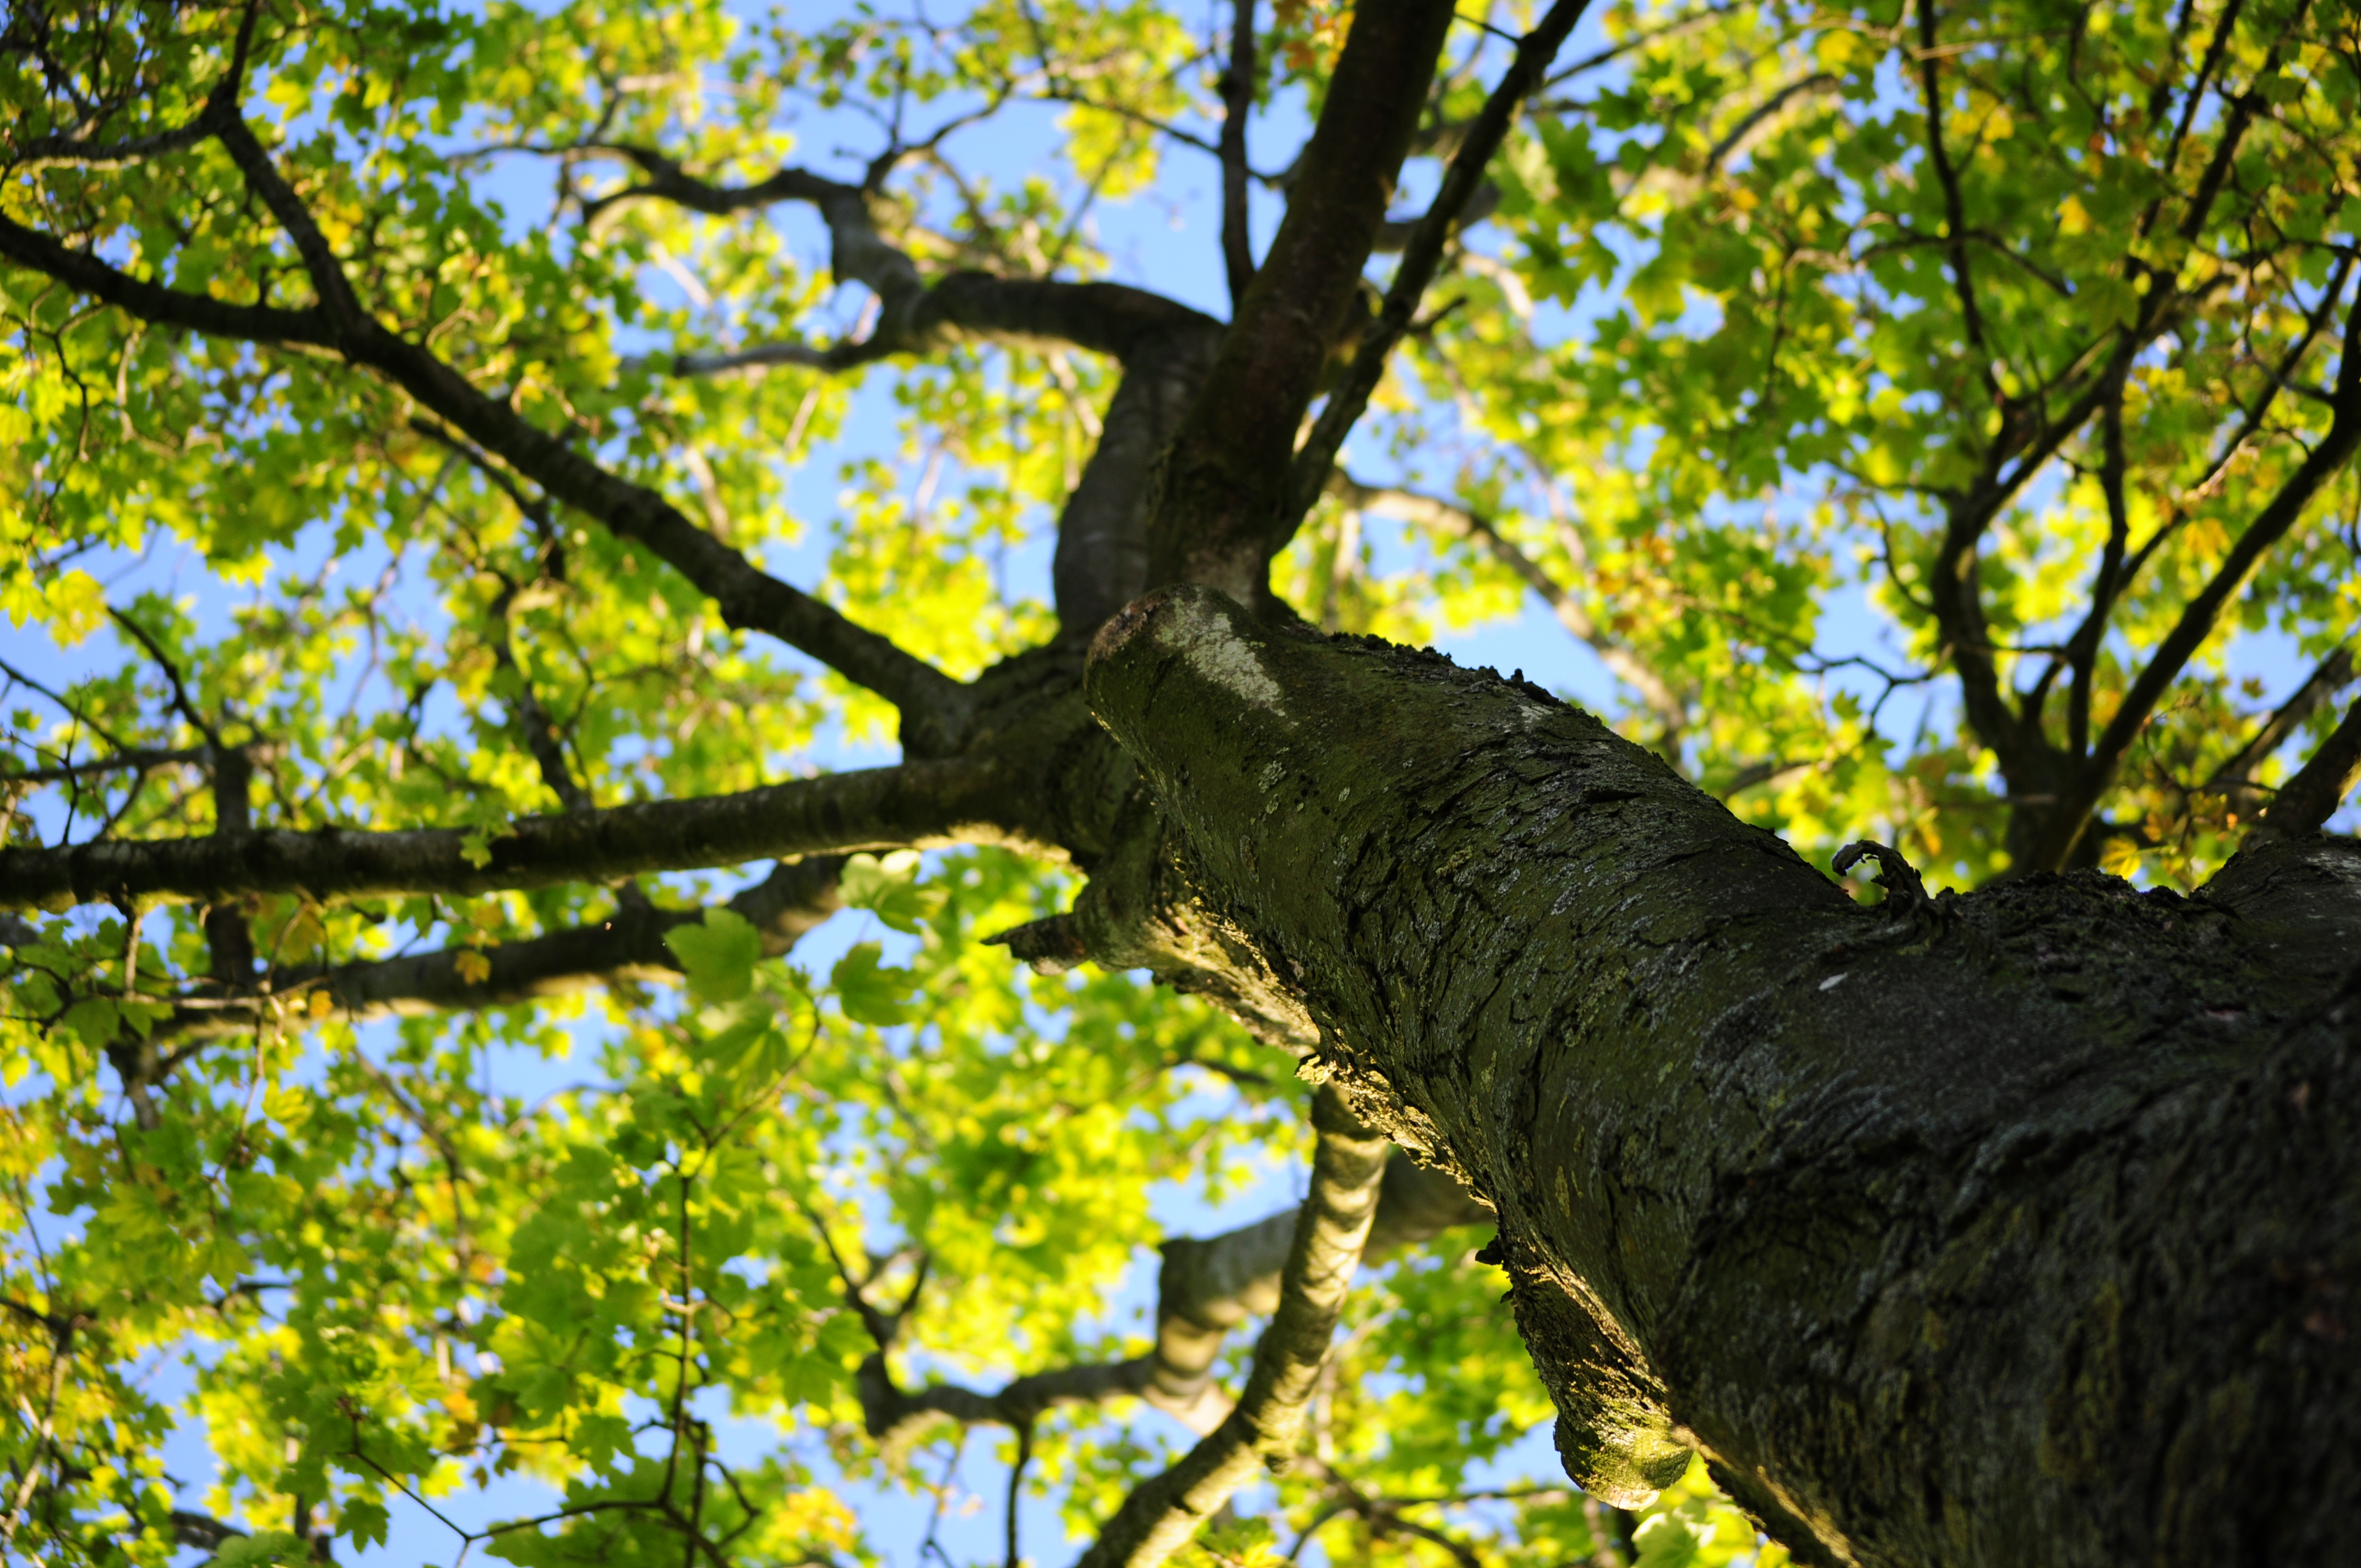 Plant a Tree to Increase Property Values